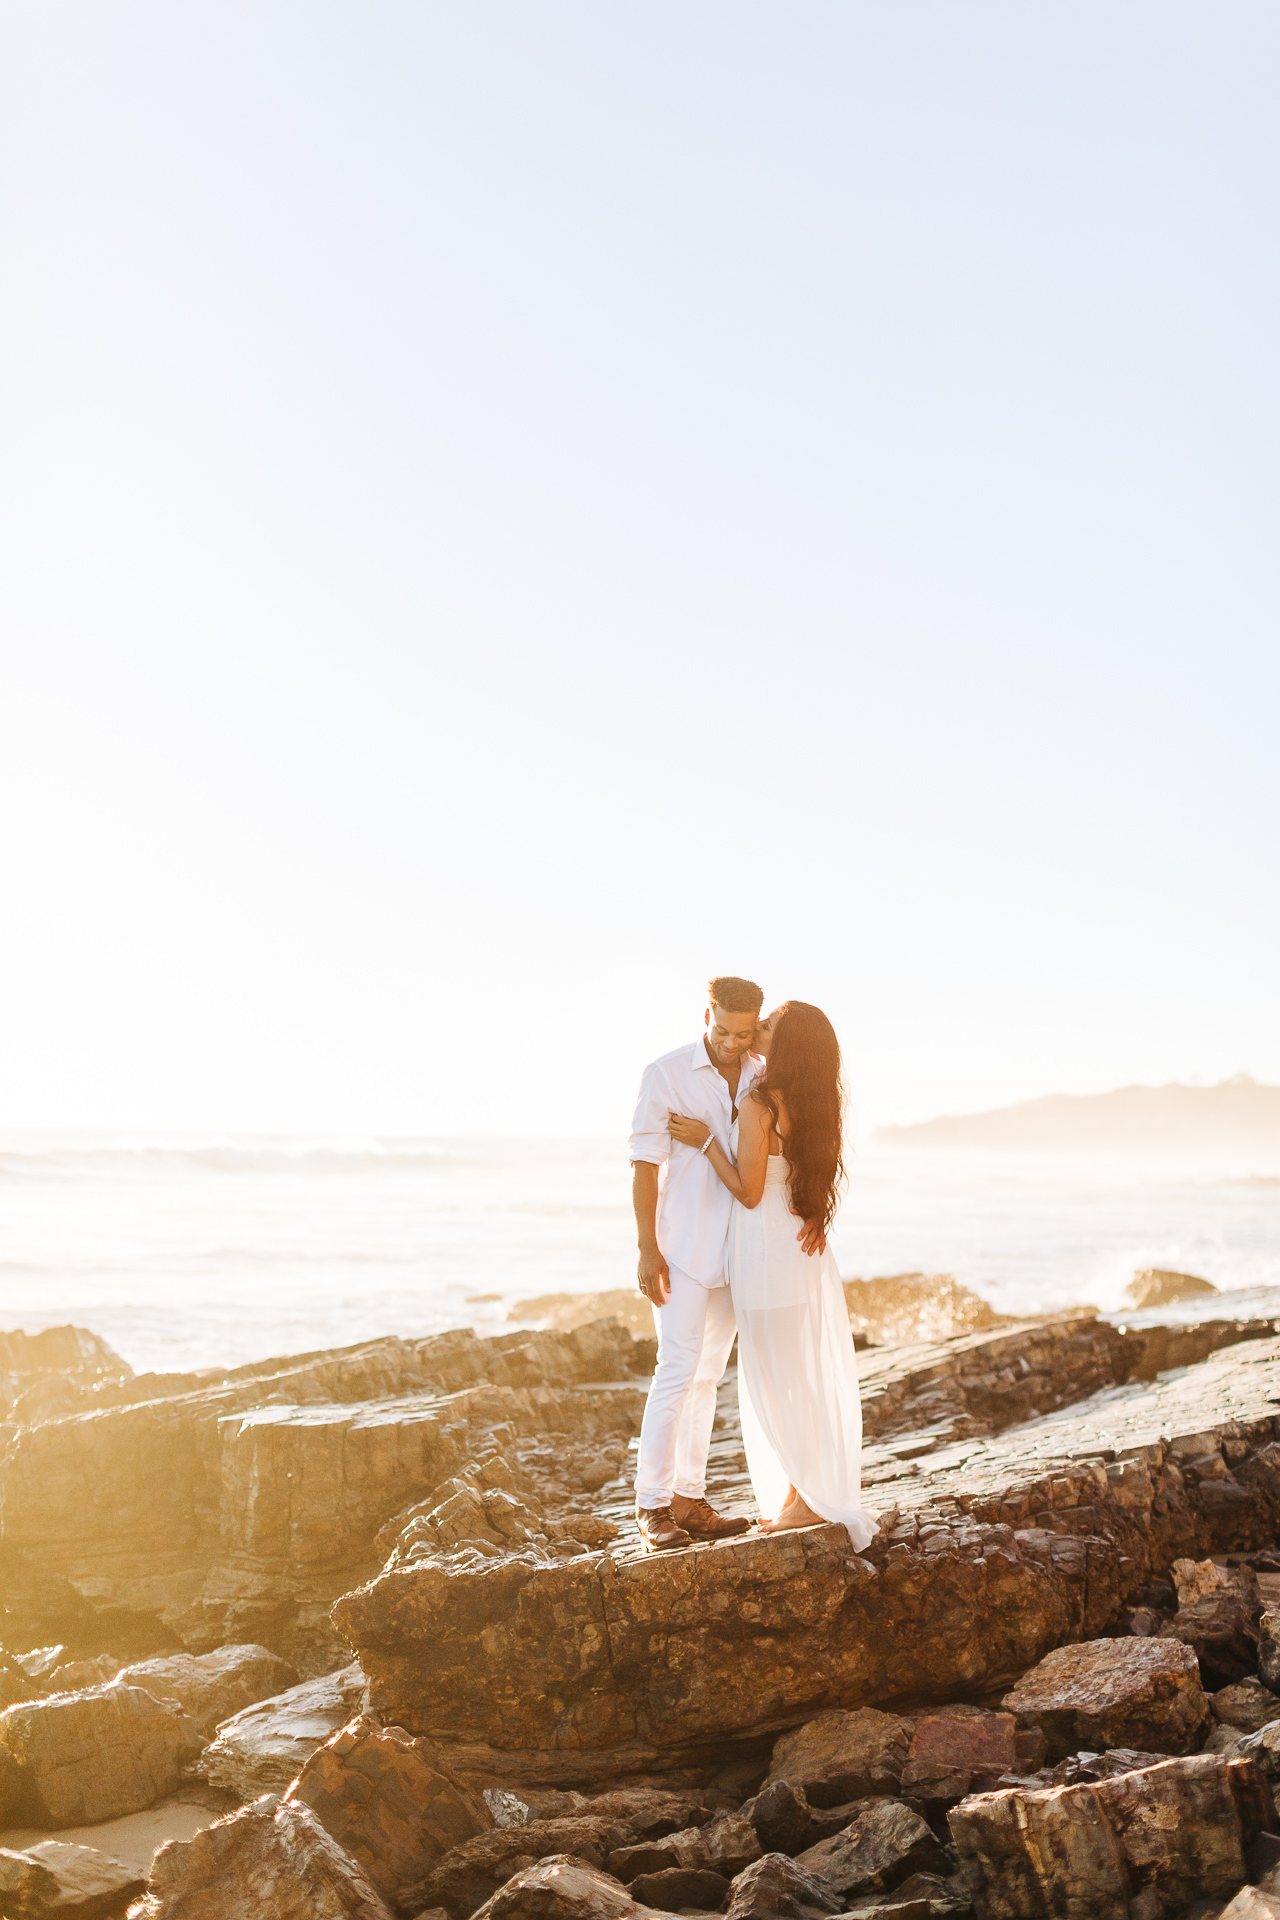 Nanis&Jay-Crystal-Cove-Beach-Engagement-Session-Clarisse-Rae-Photo-&-Video-Orange-County-Wedding-Photographer-&-Videographer_32